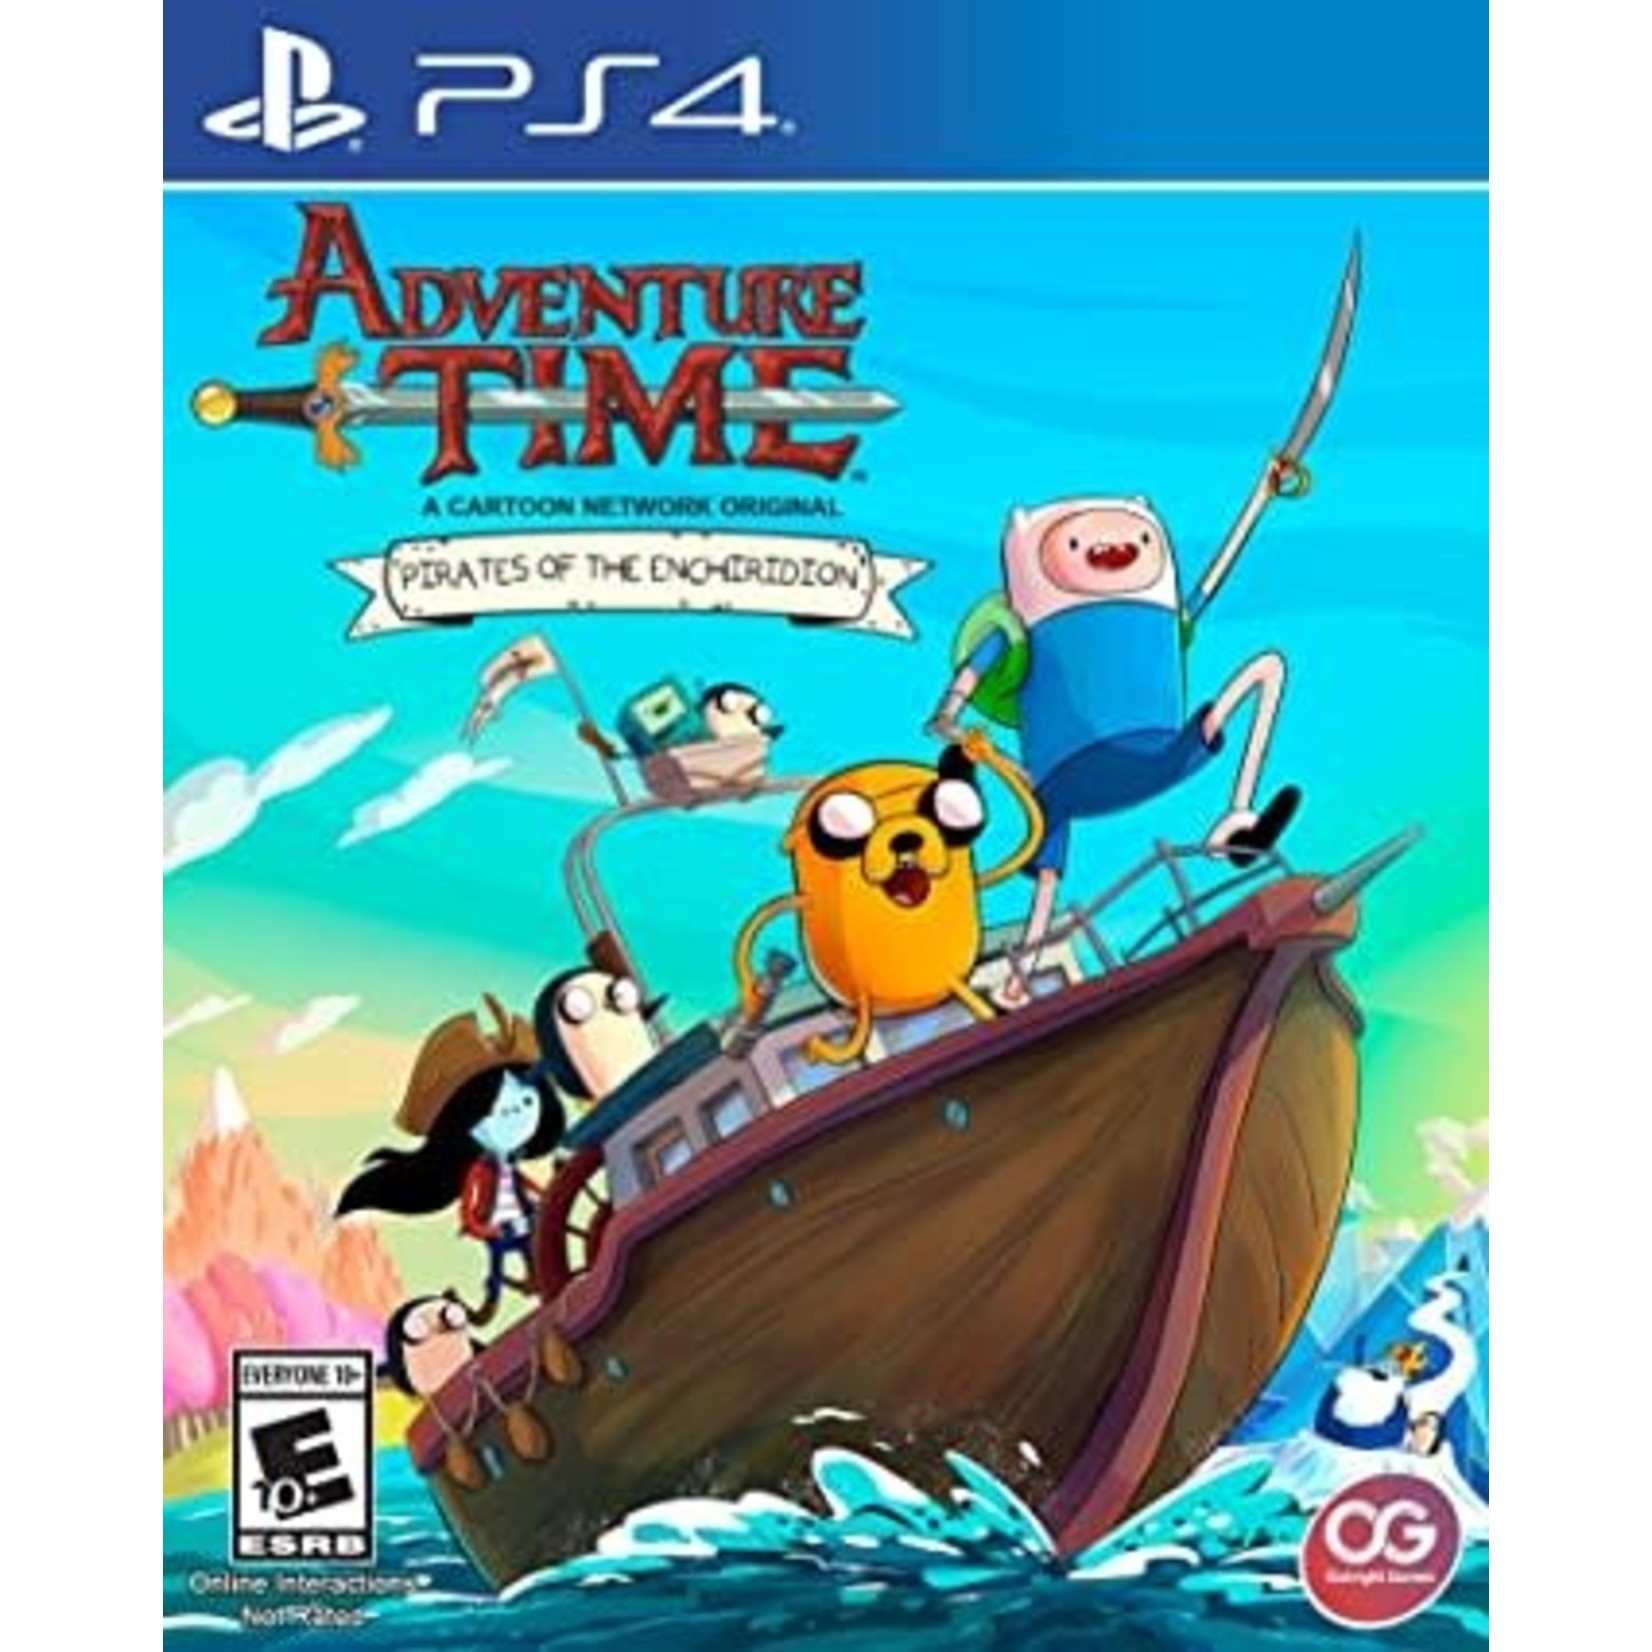 PS4U-Adventure Time: Pirates of the Enchiridion